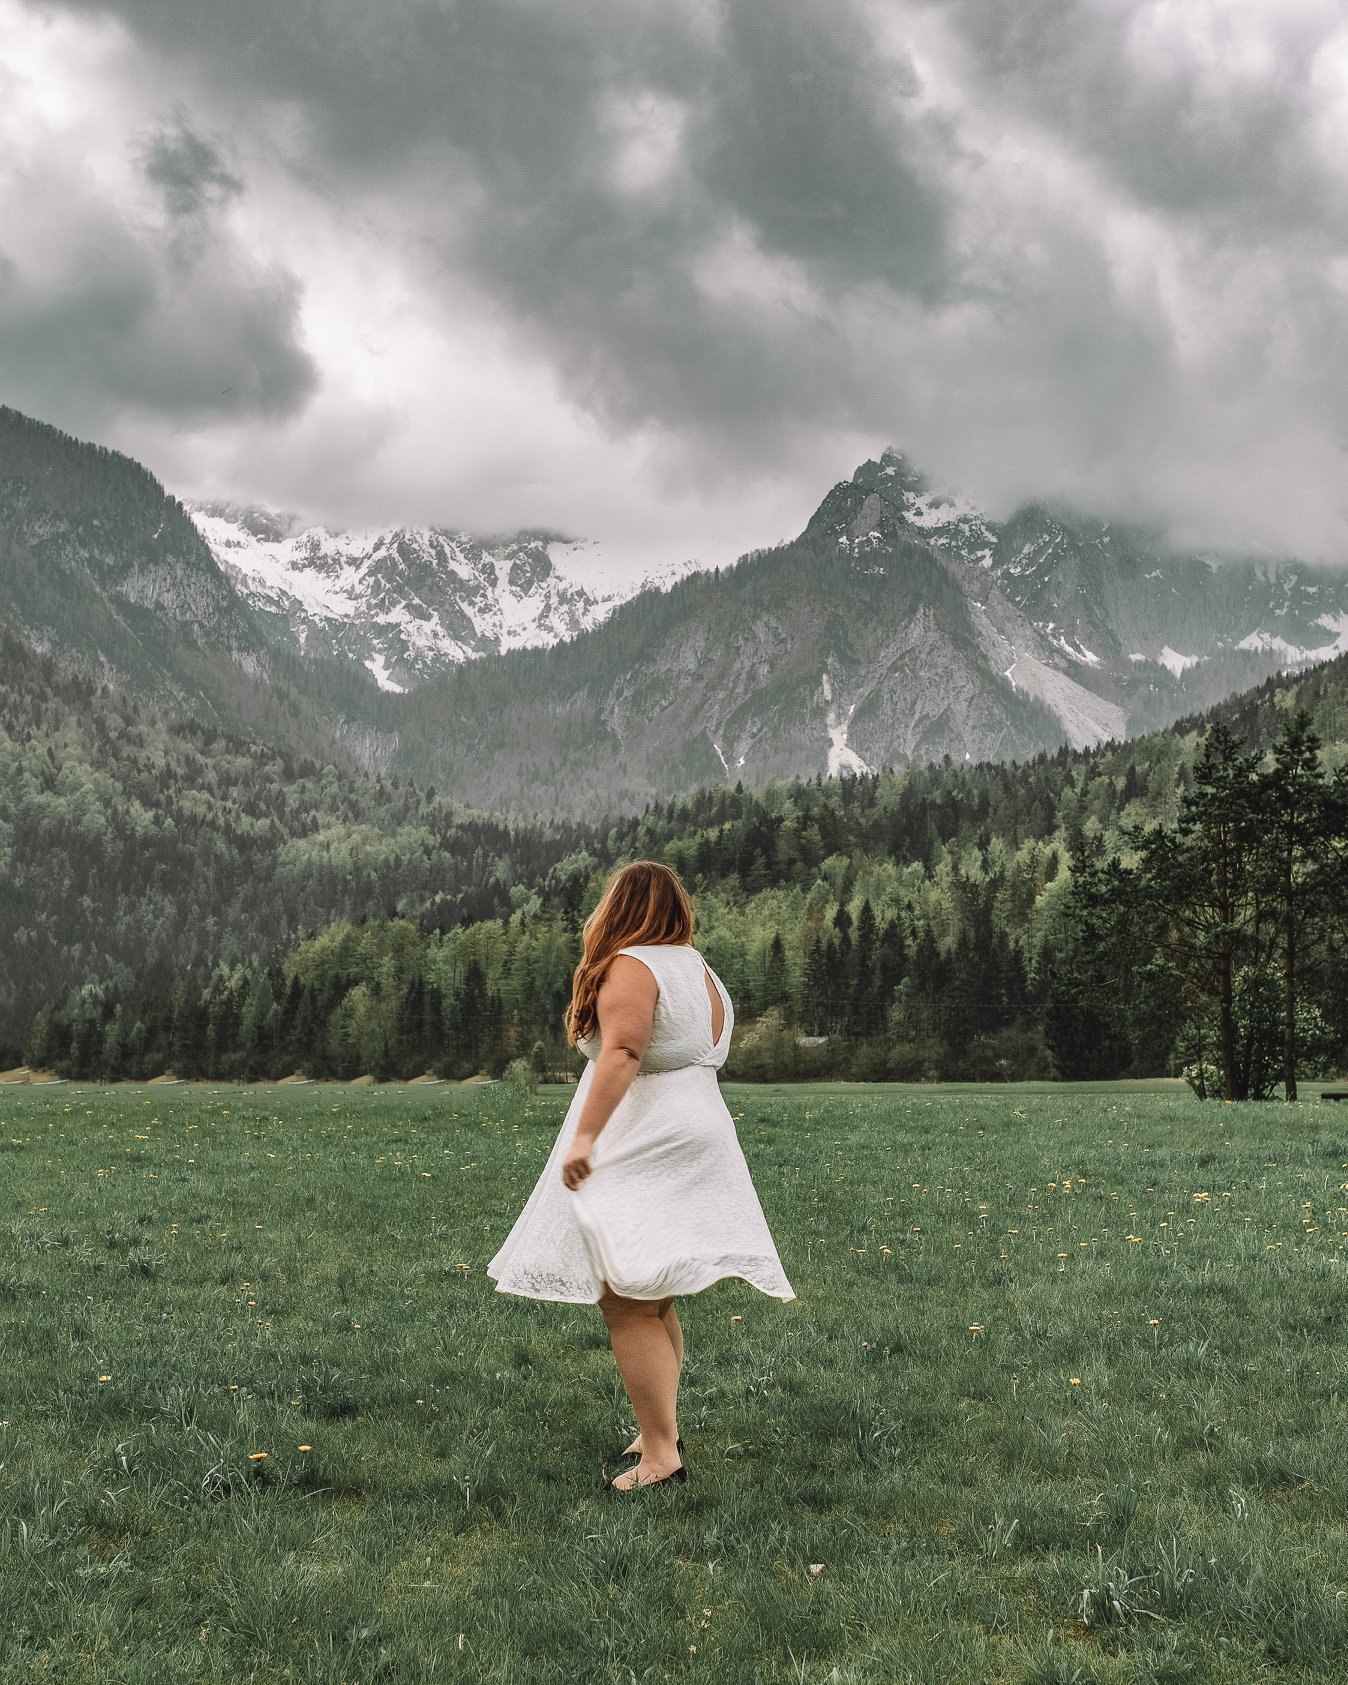 How to get incredible photos of yourself while traveling in Slovenia!